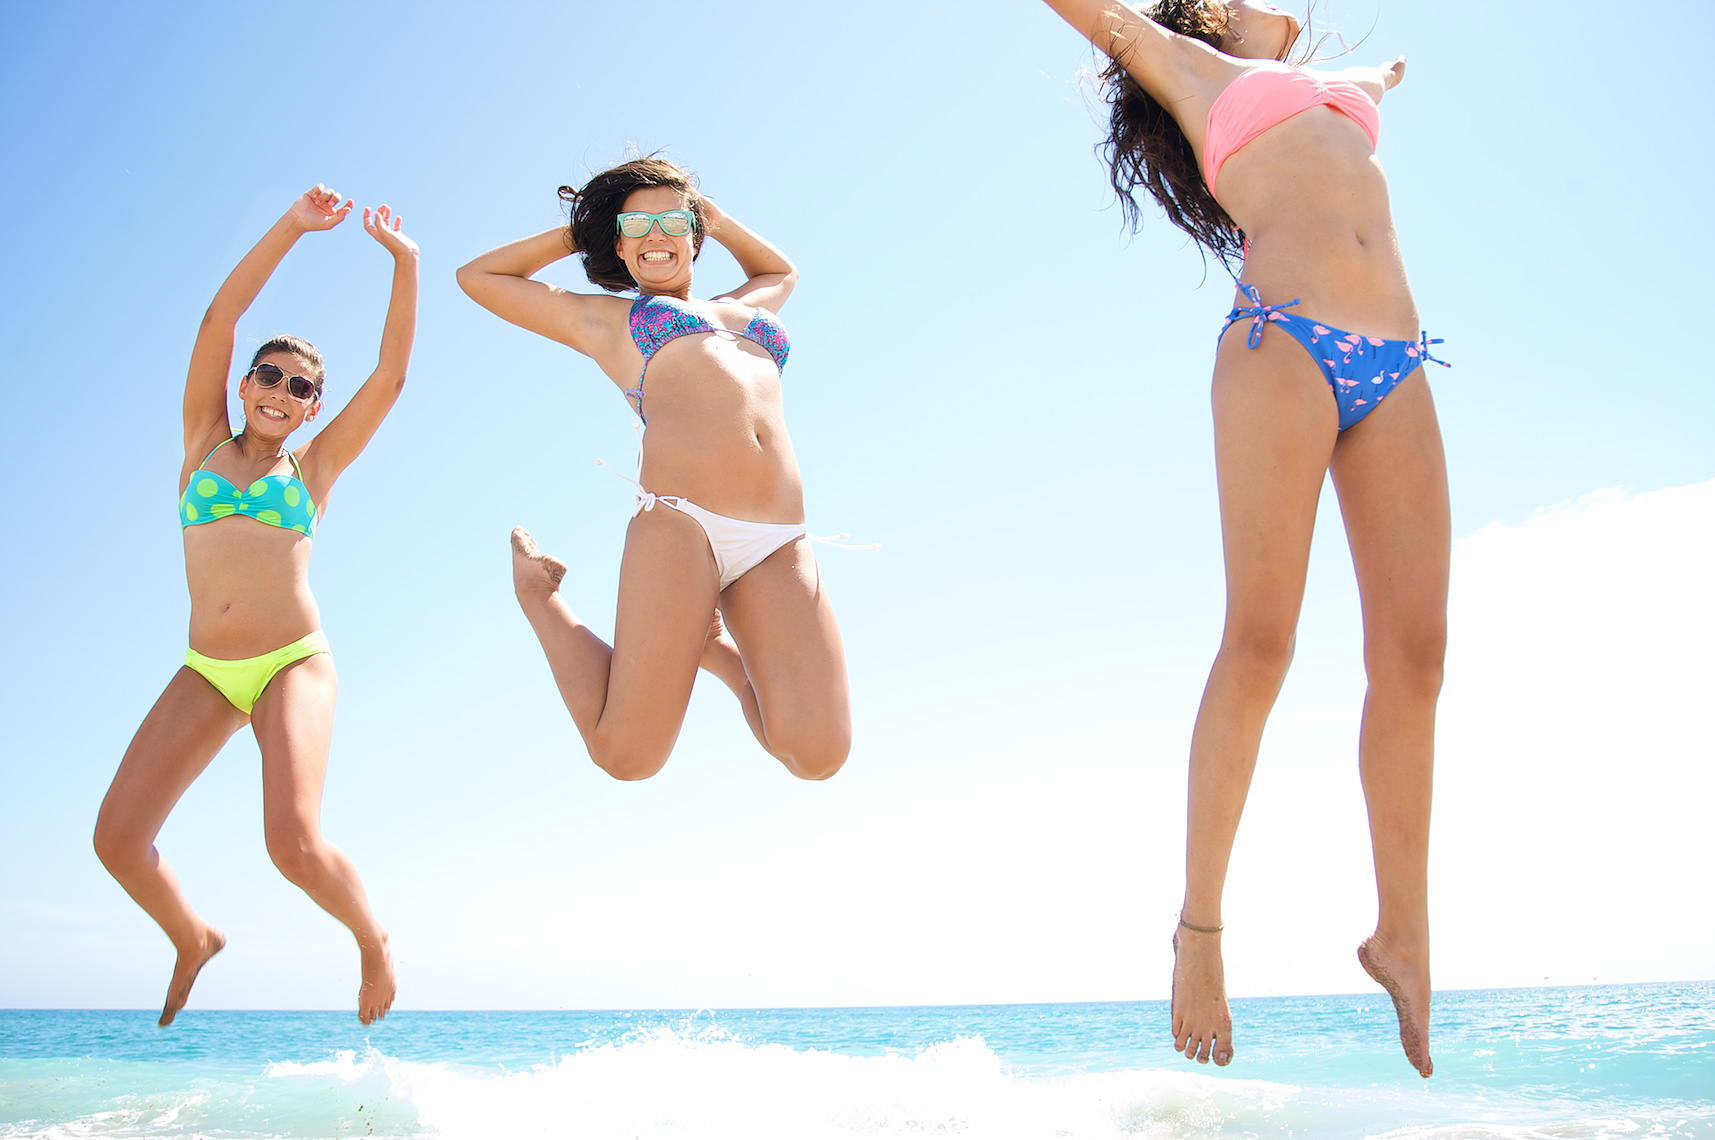 three teenage girls having fun at beach jumping high in air_A2D3329_Robert-Holland.jpg